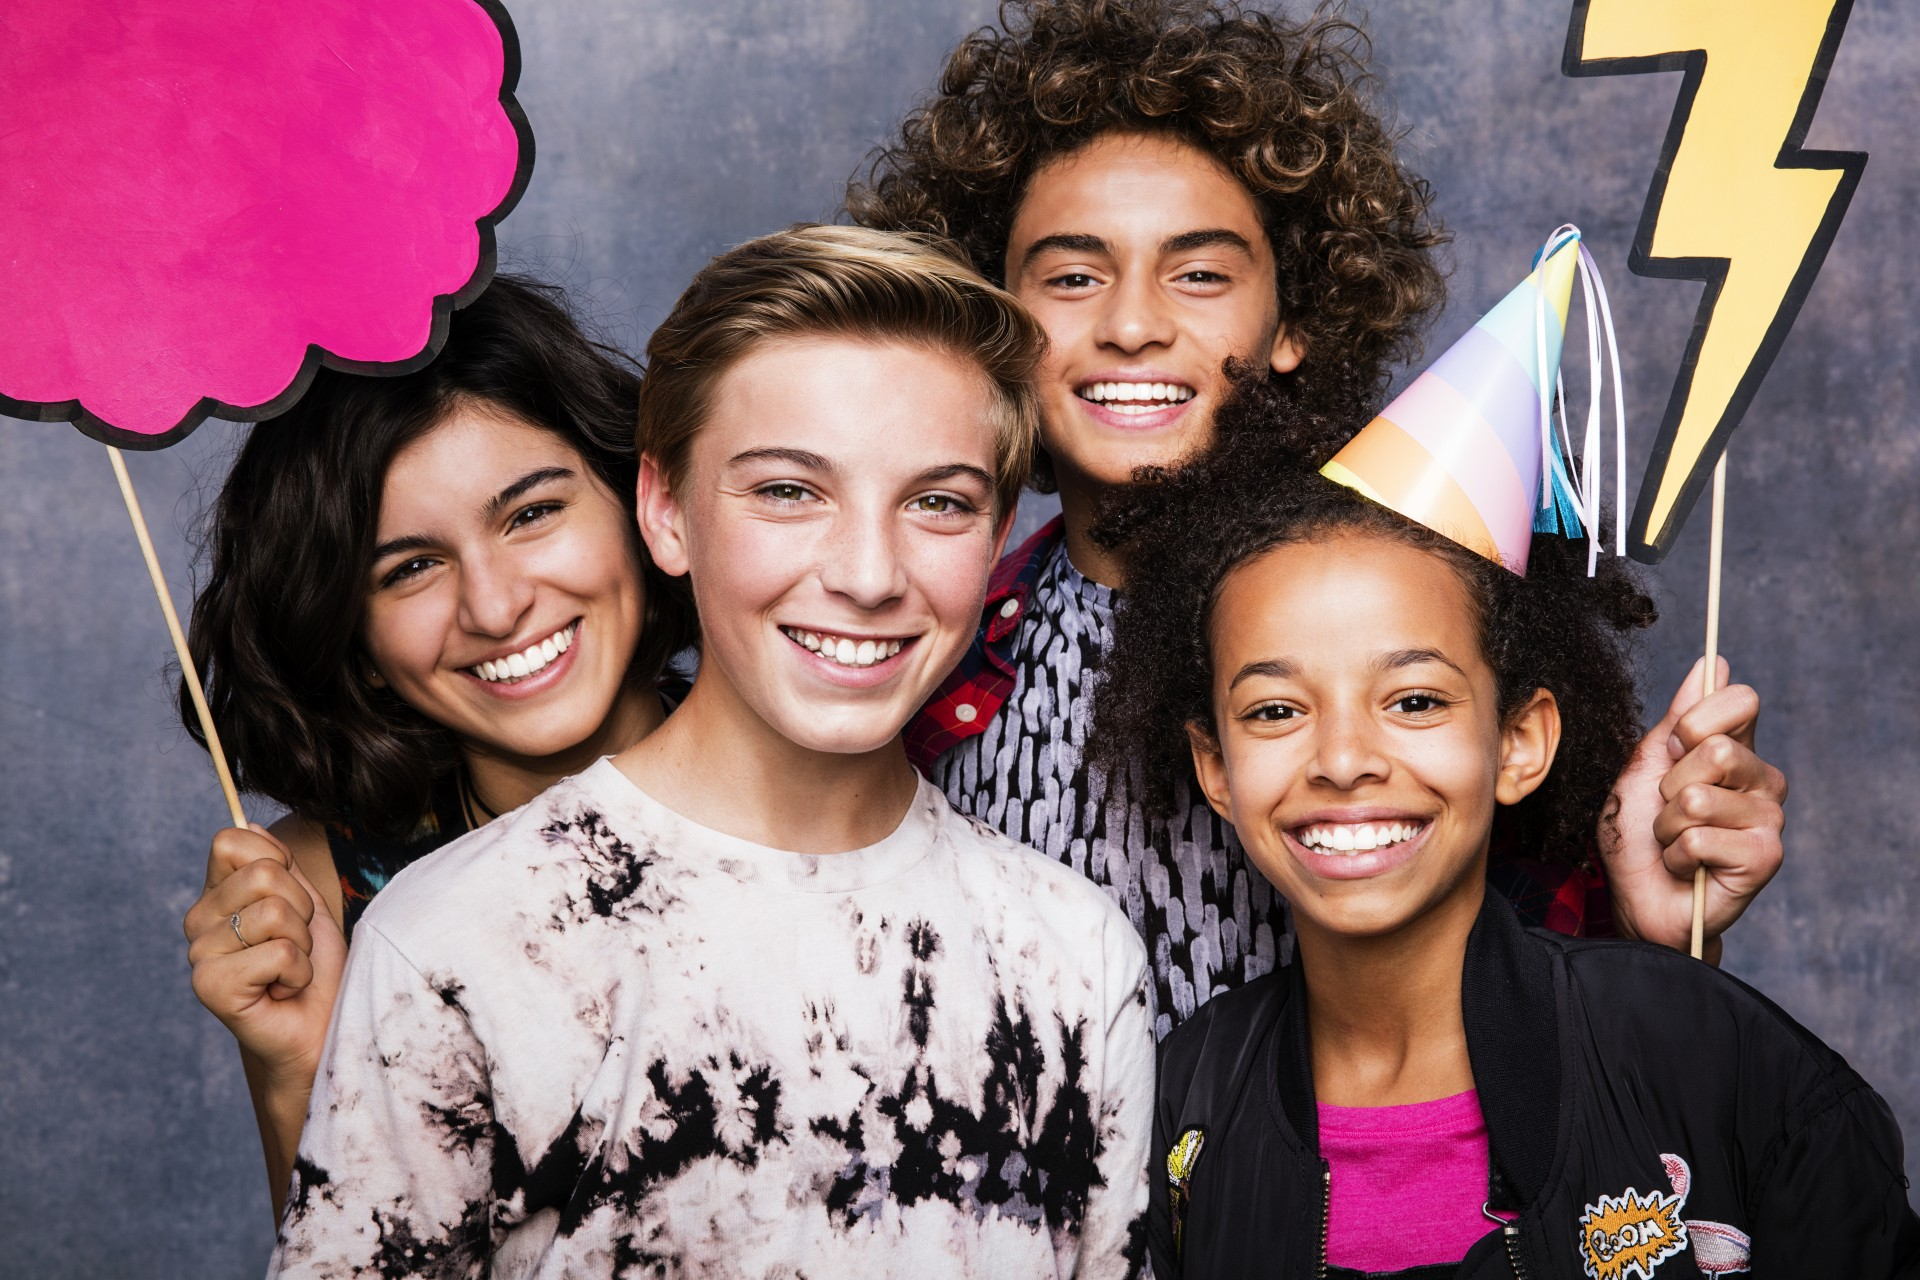 Photo of Smiling teens compliments of Align Contact